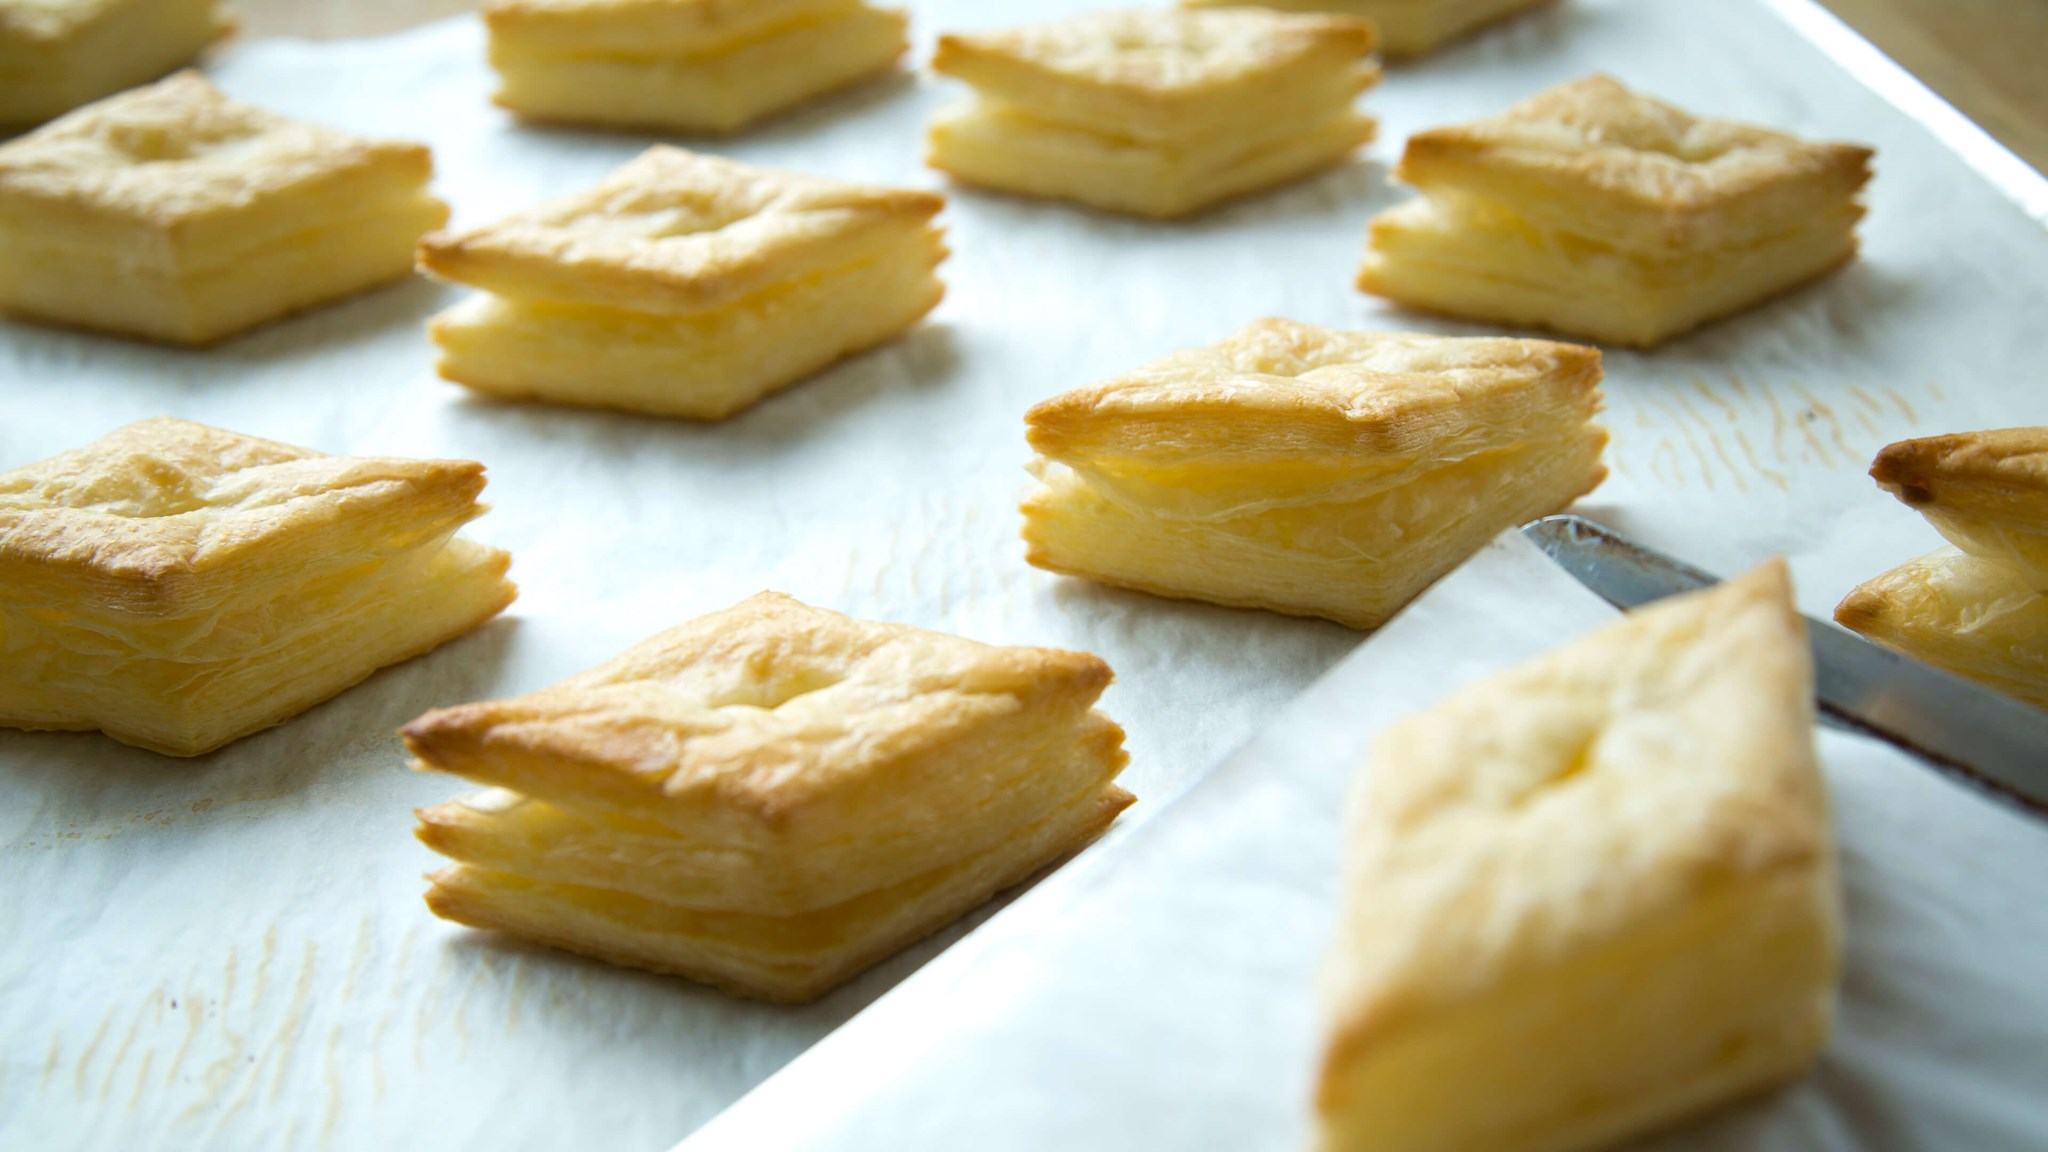 Palsgaard Baking Test Of Trans Fat Free Puff Pastry